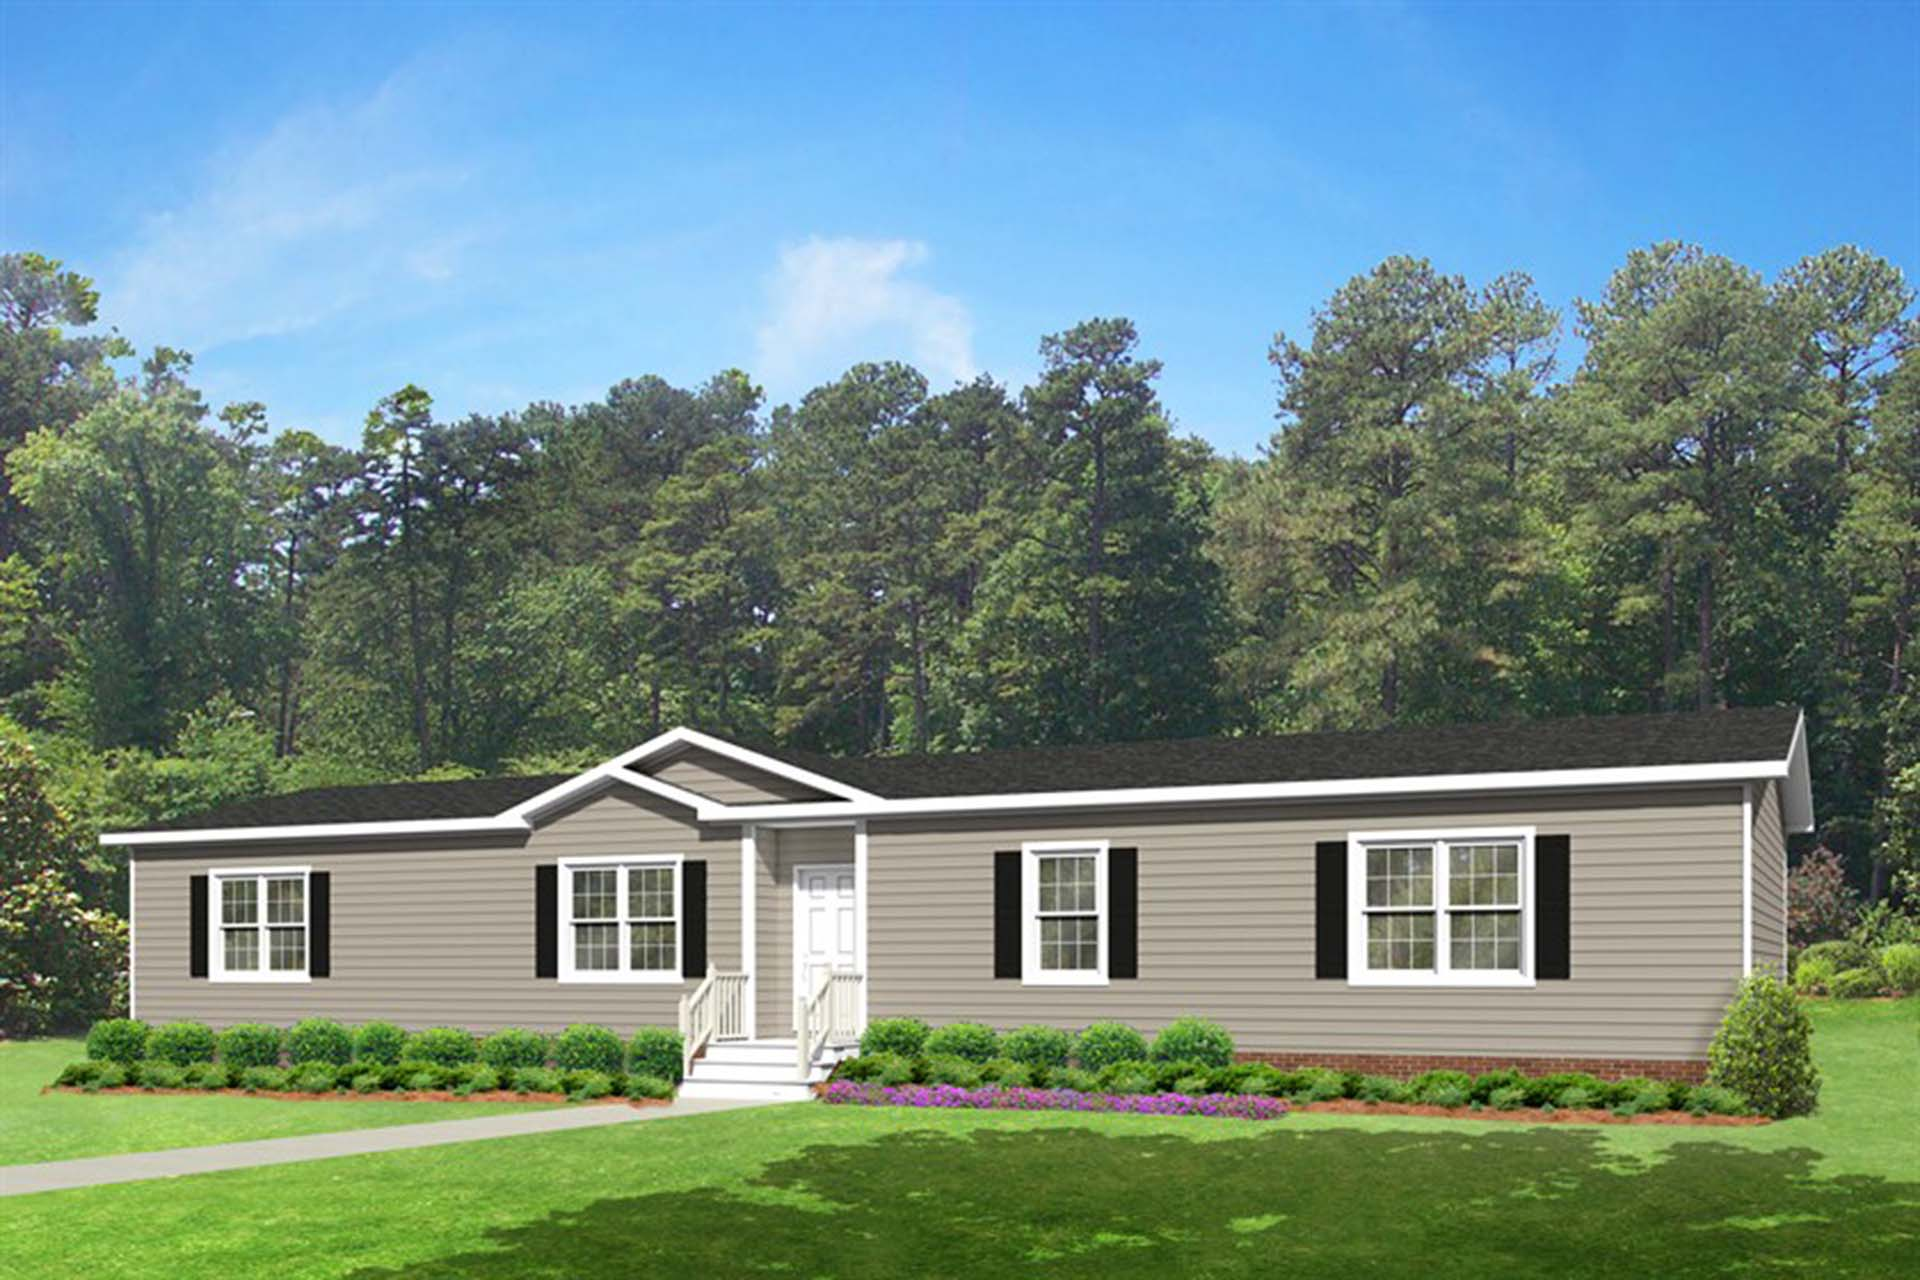 Charleston Monck Corners Summerville Manufactured Modular Home